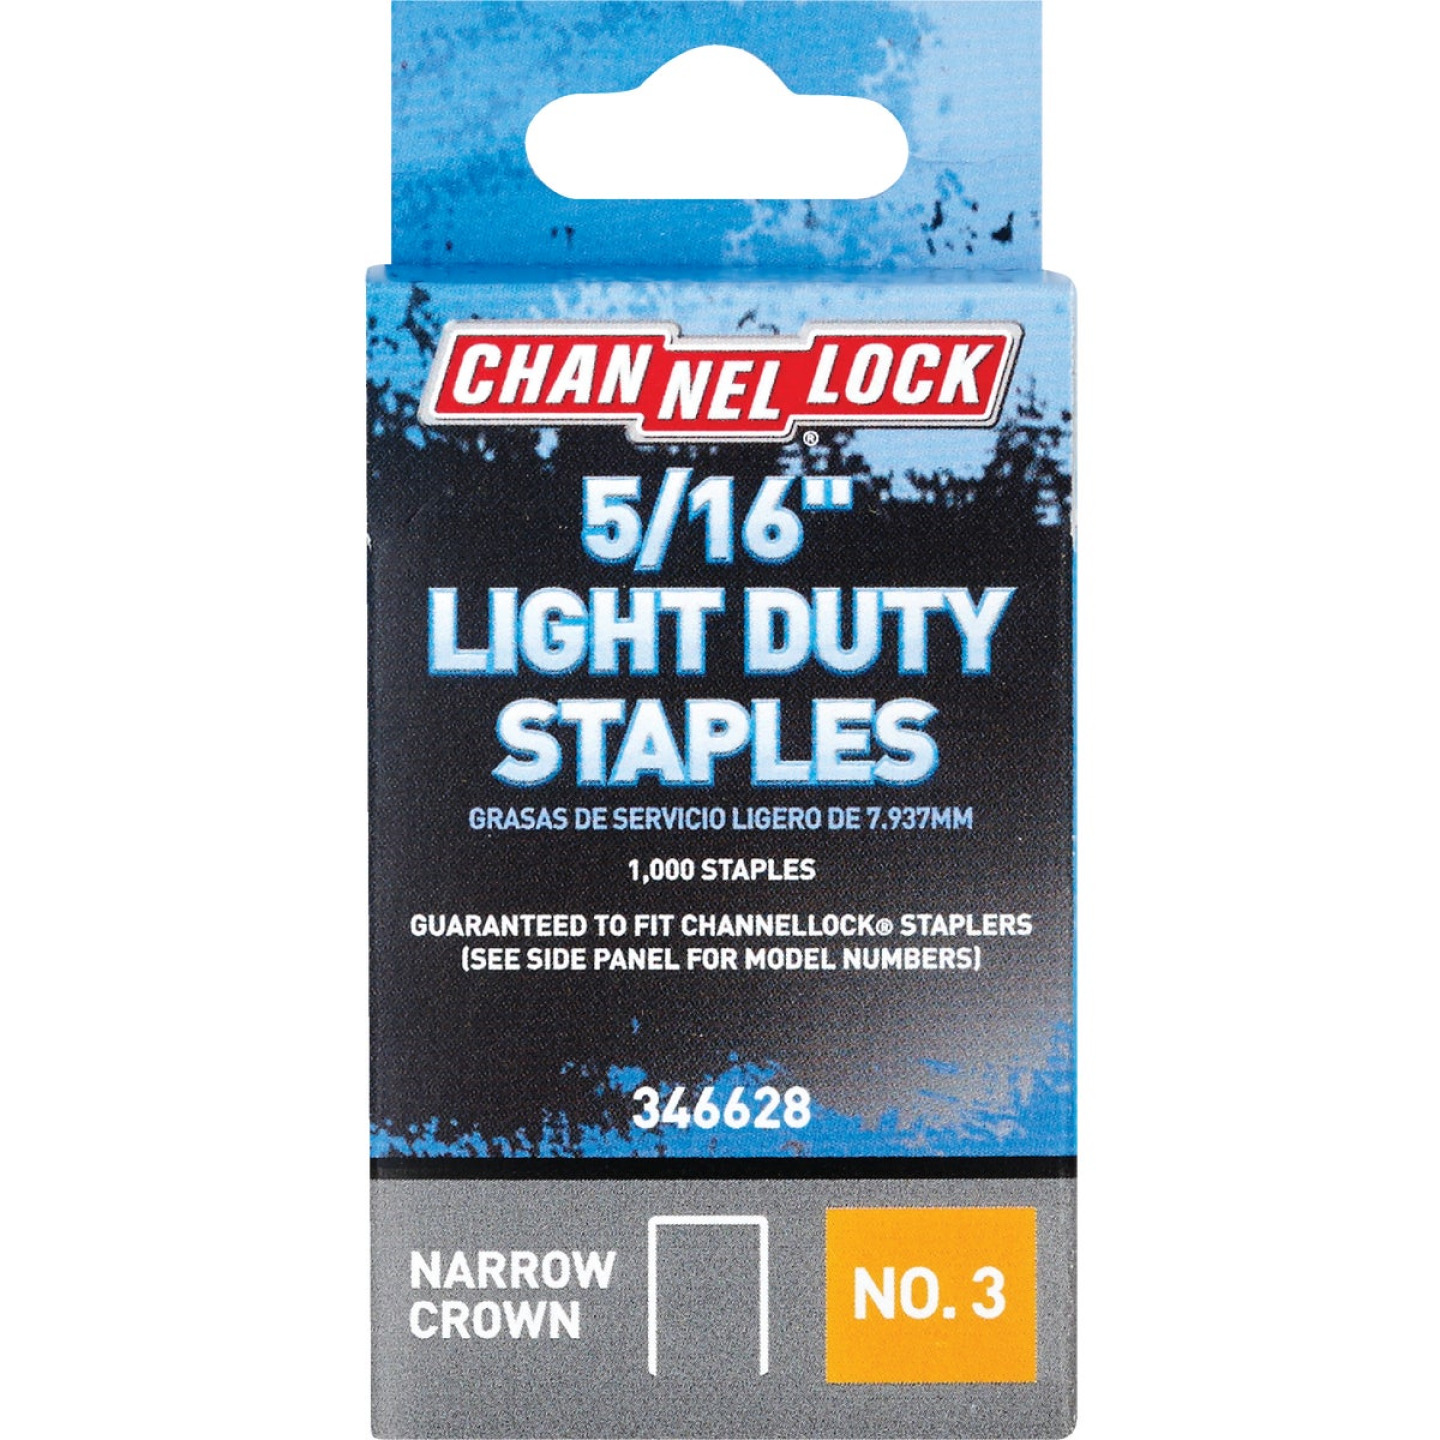 Channellock No. 3 Light Duty Narrow Crown Staple, 5/16 In. (1000-Pack) Image 1